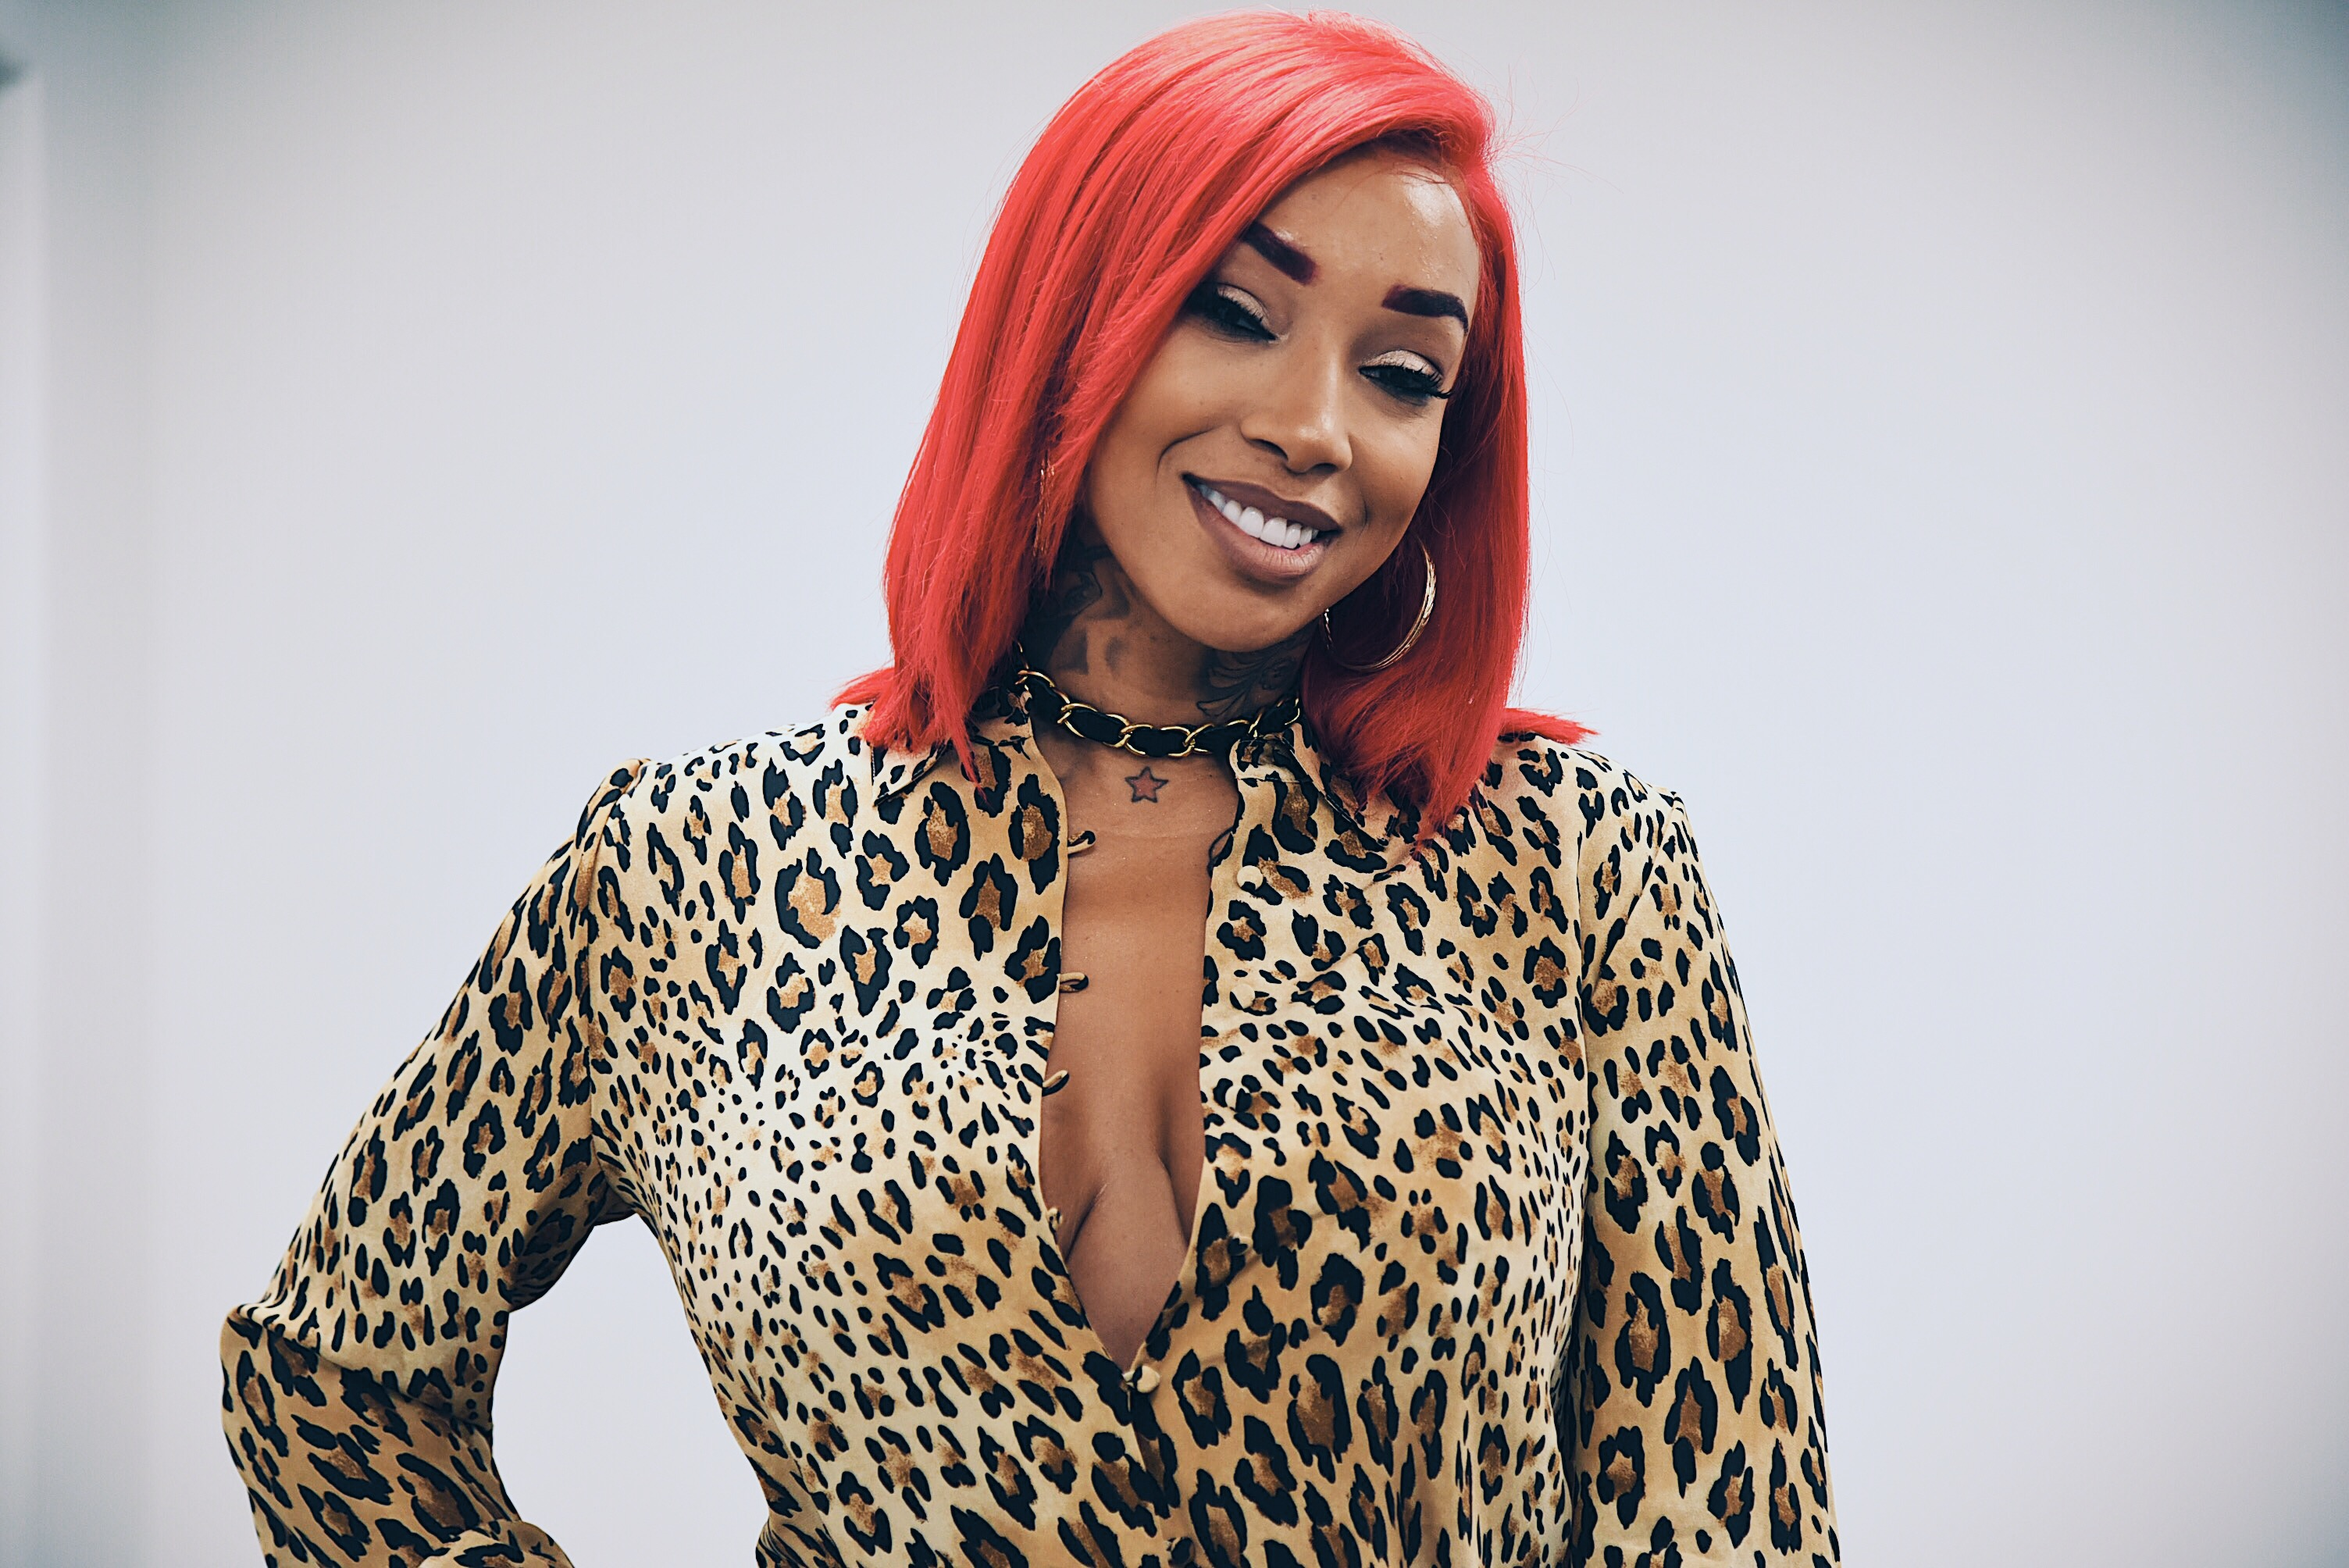 Sky Her Son Des Go At It In Season 8 Premiere Of Black Ink Crew The Latest Hip Hop News Music And Media Hip Hop Wired